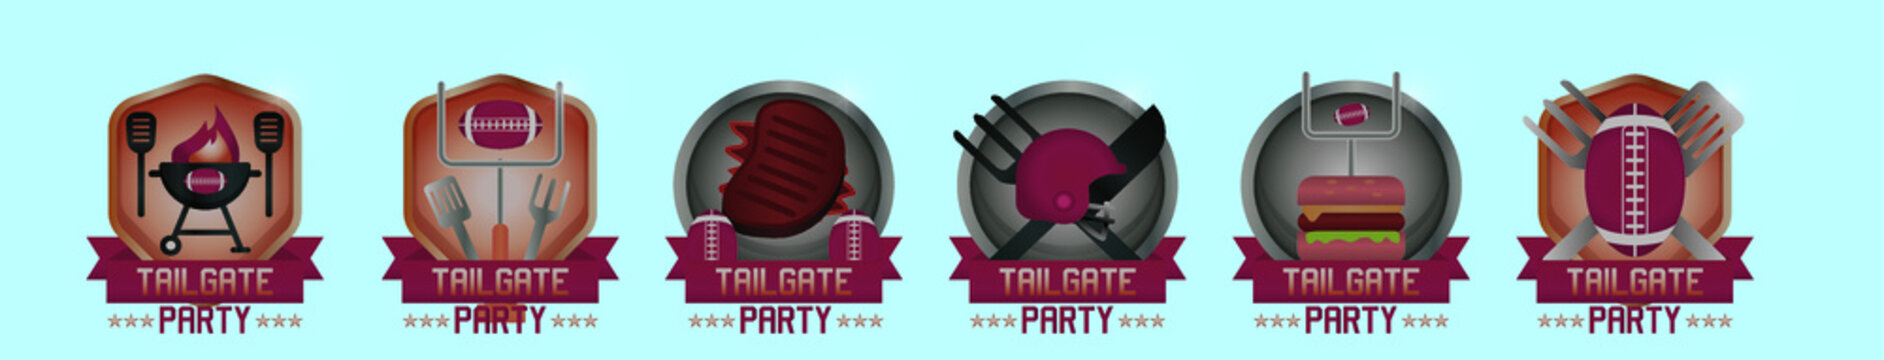 set of tailgate logo cartoon icon design template with various models. vector illustration isolated on blue background